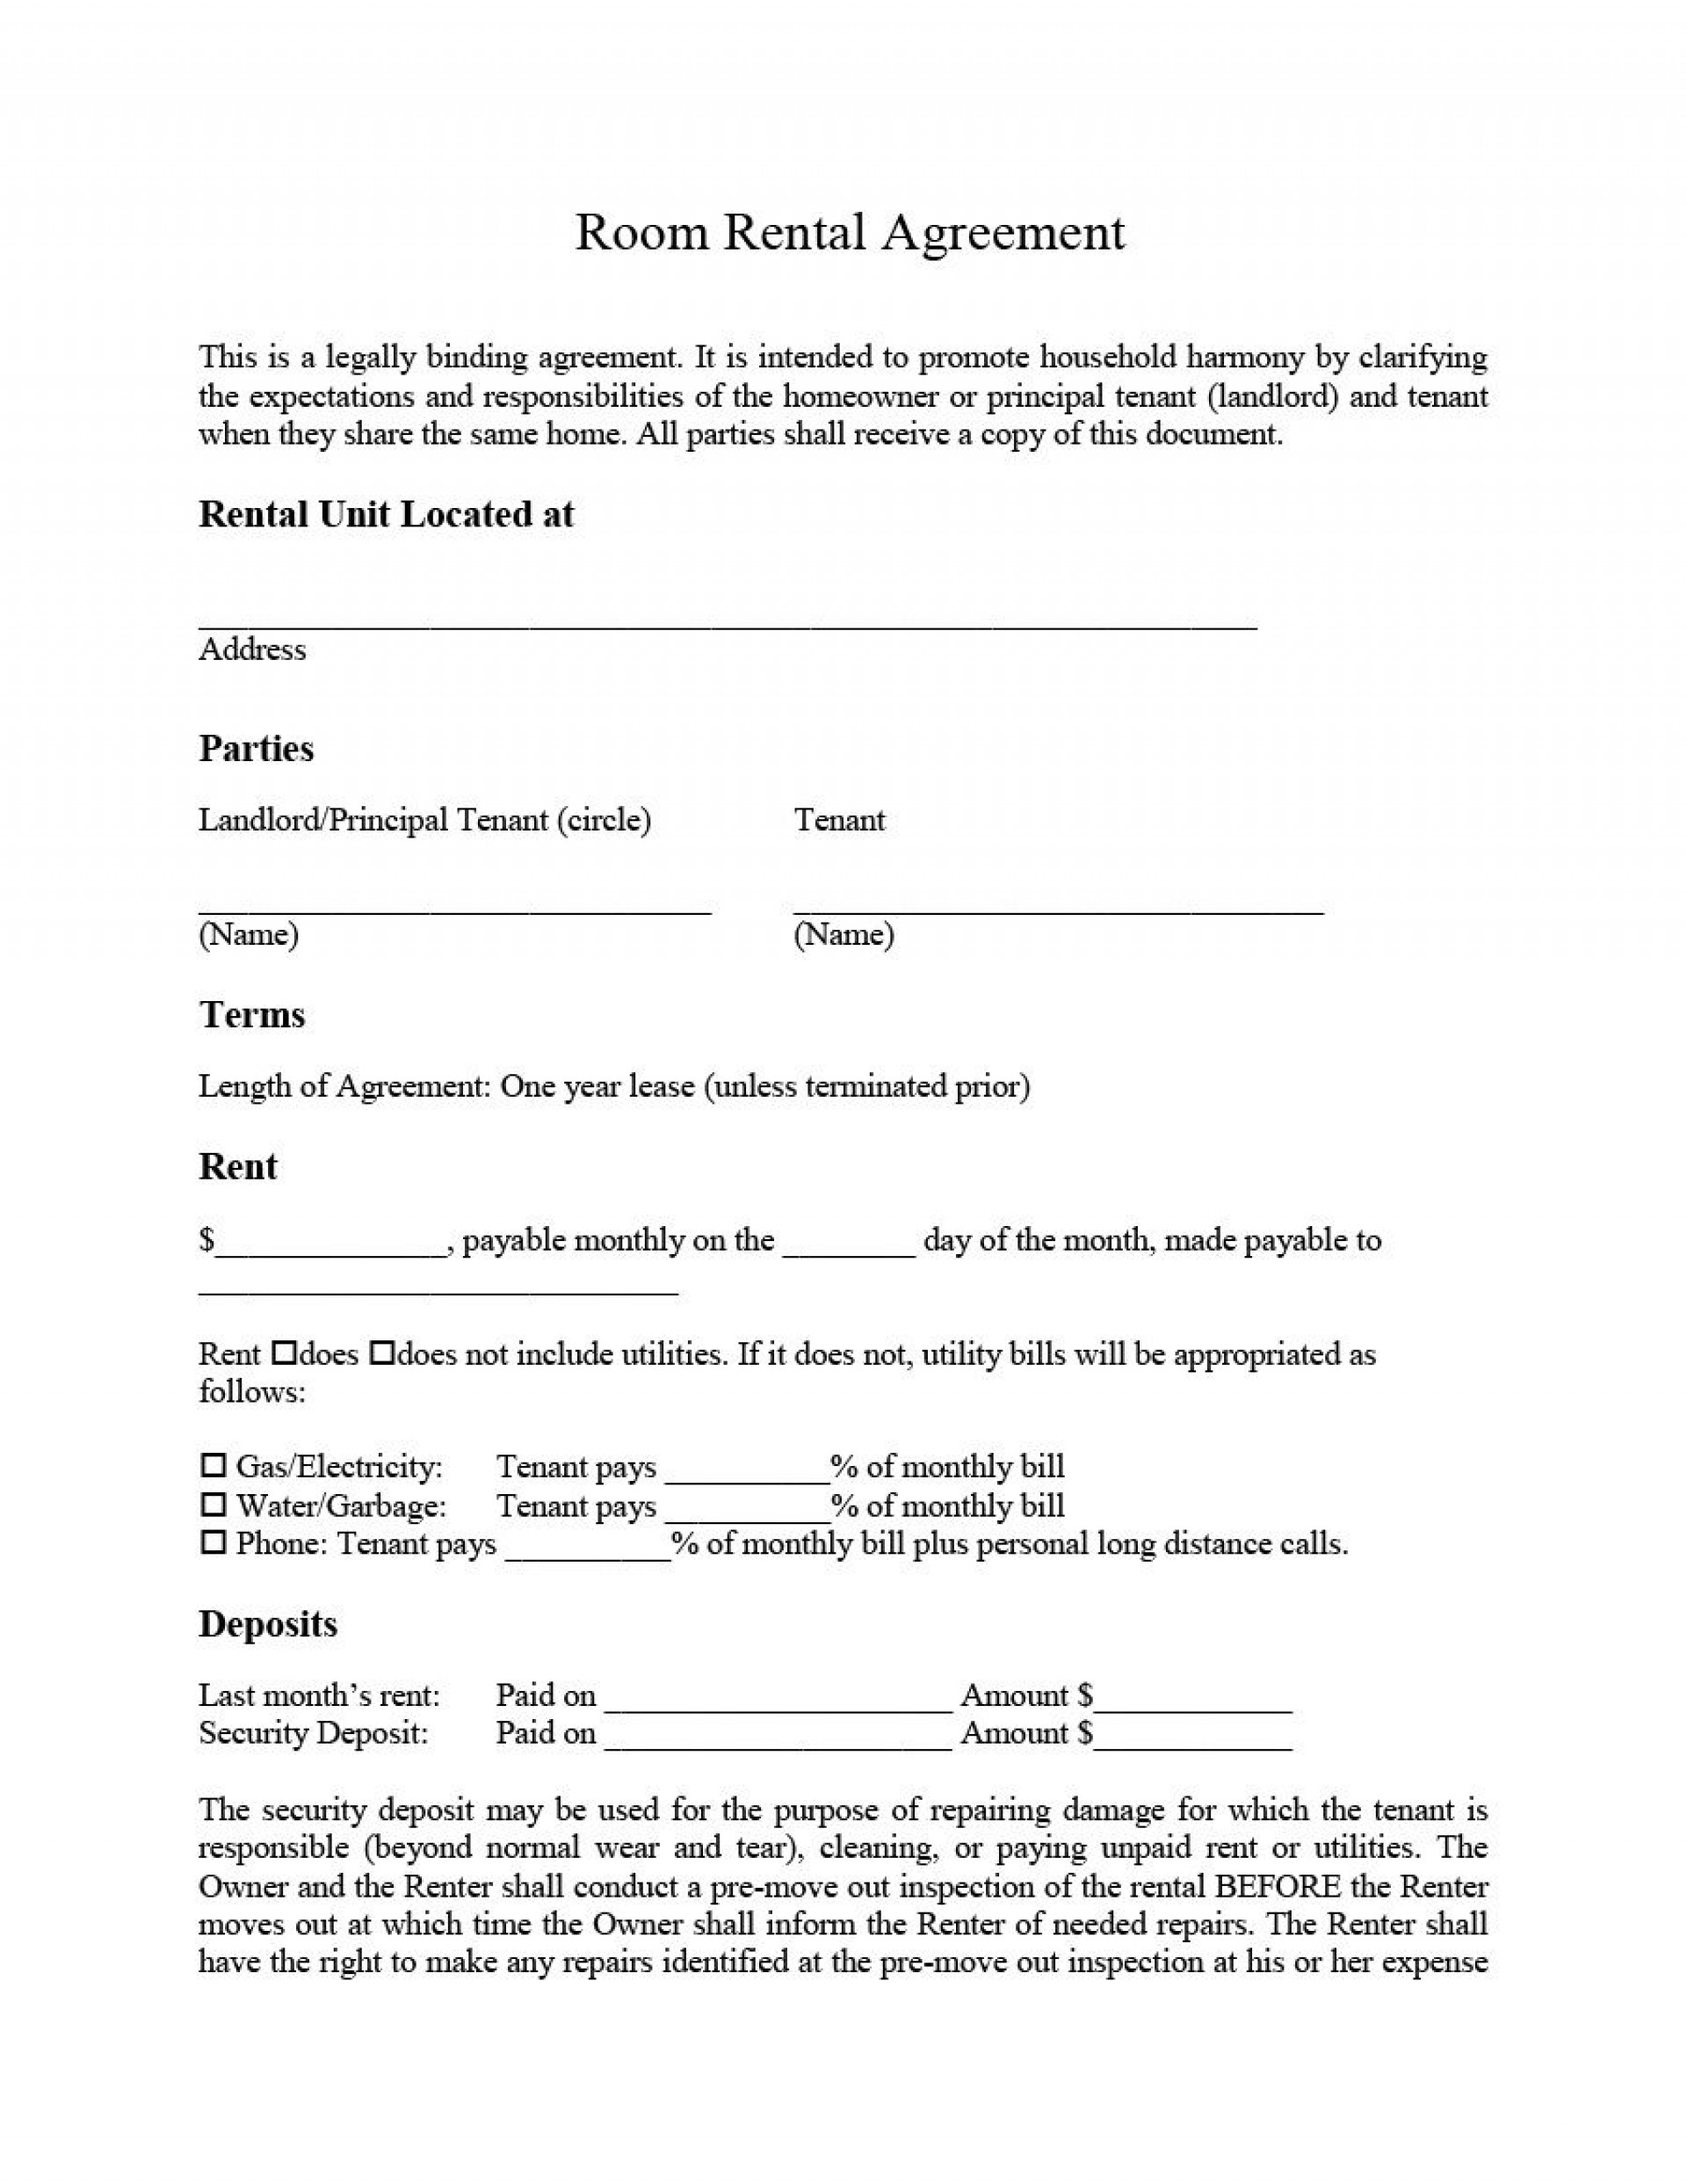 003 Top Room Rental Agreement Simple Form Picture  Template Word Doc Rent Format In Free Uk1920